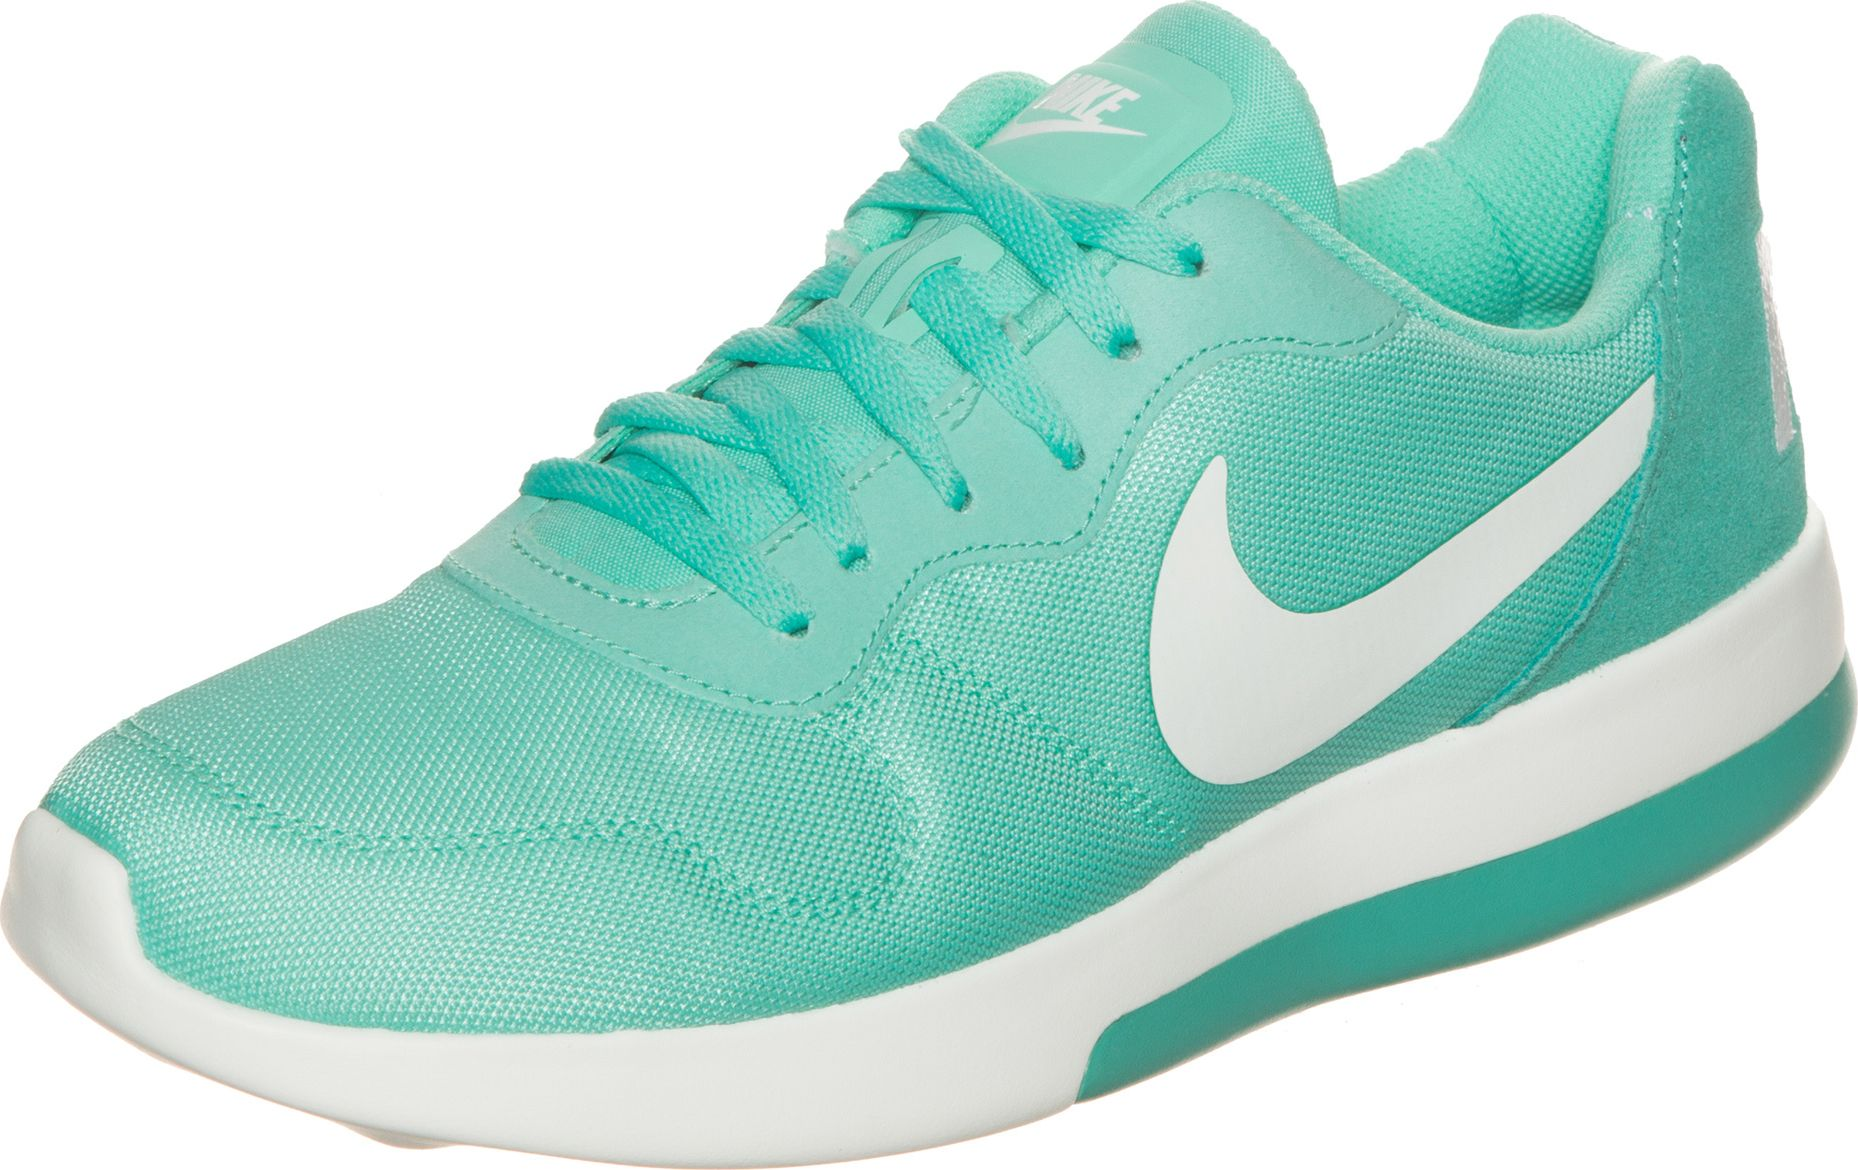 ab954ca669 ... Nike MD Runner 2 LW Hyper Turq Washed Teal ...